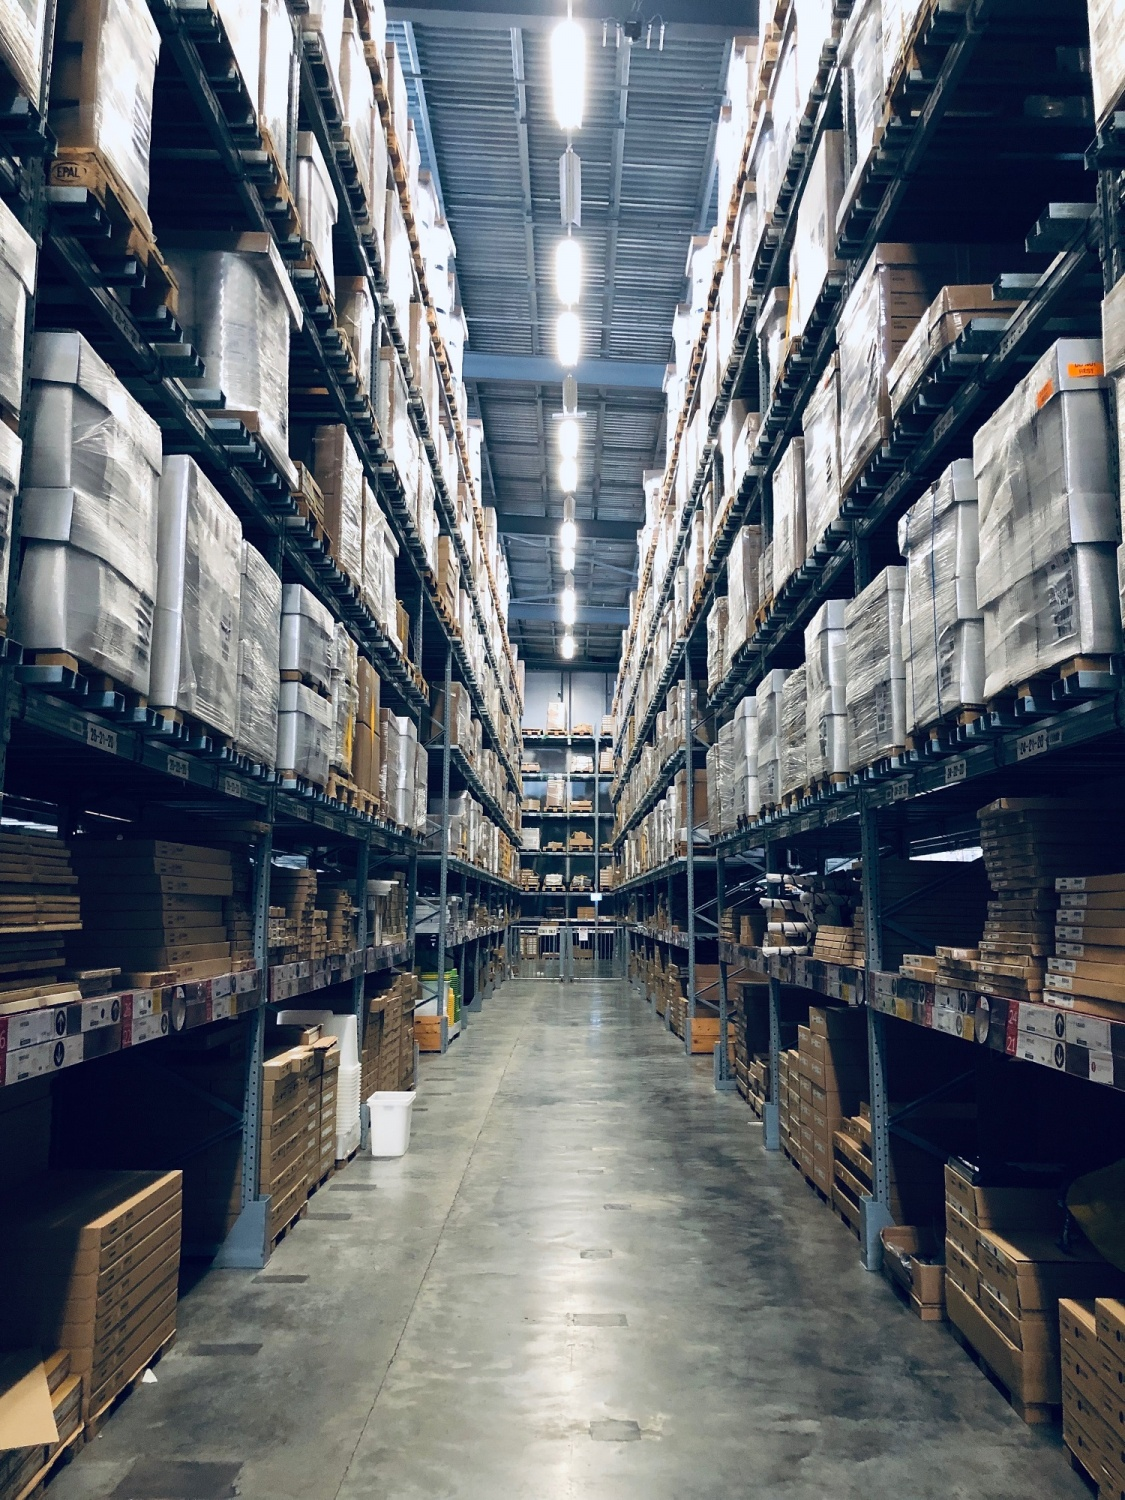 UVC-Equipped Robots Developed to Disinfect Warehouses